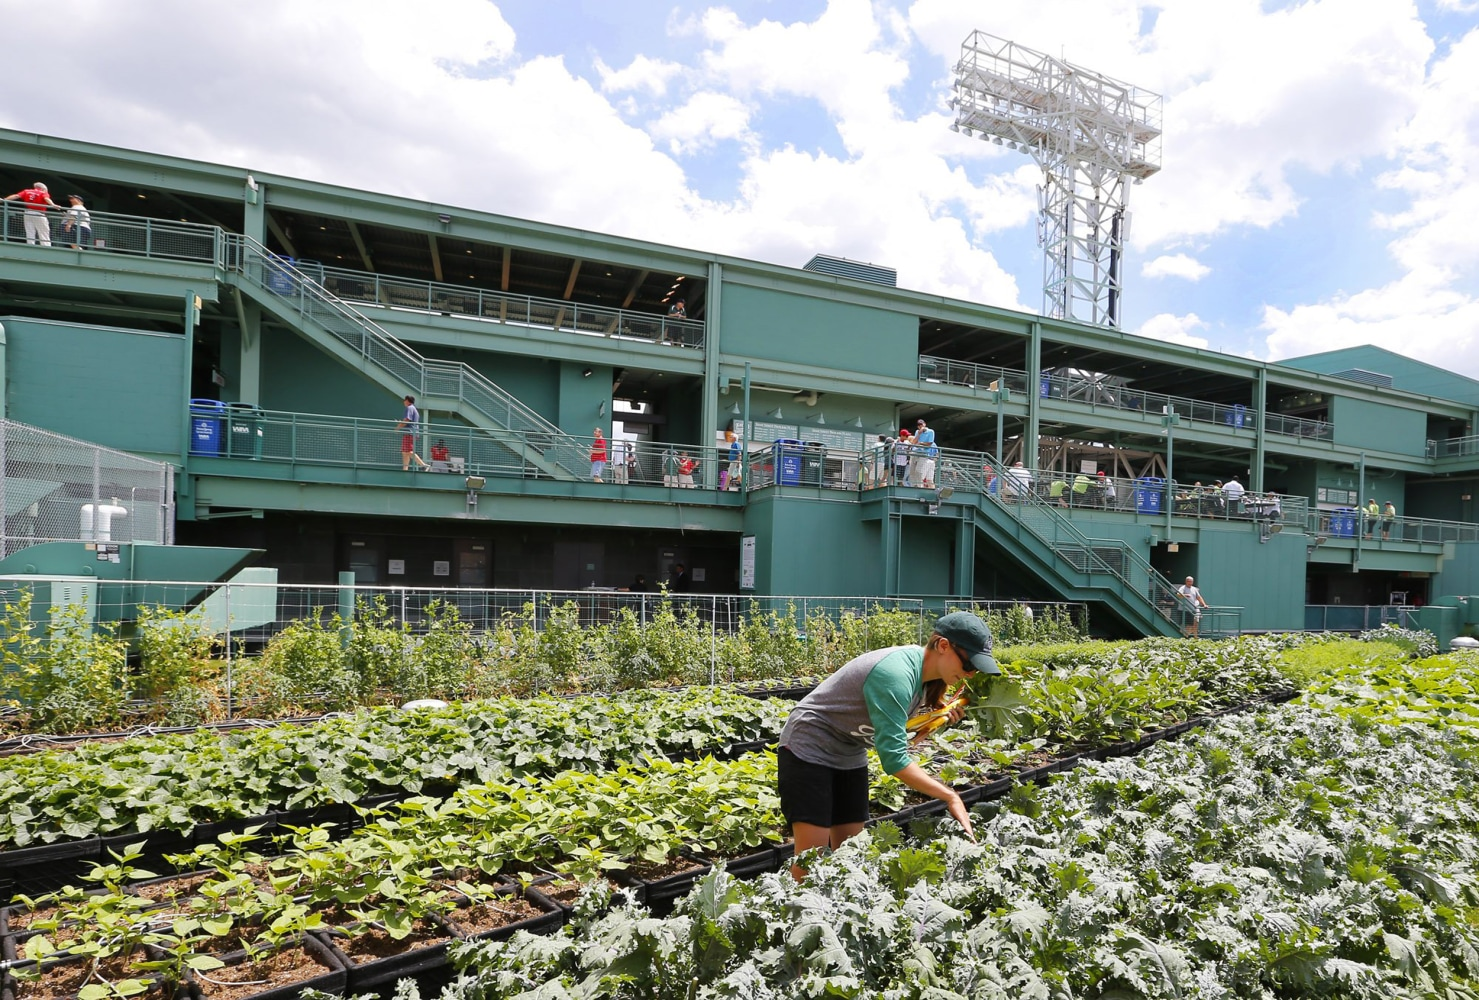 Rooftop Kitchen Garden Farm System Rooftop Garden Is A Hit At Bostons Fenway Park Nbc